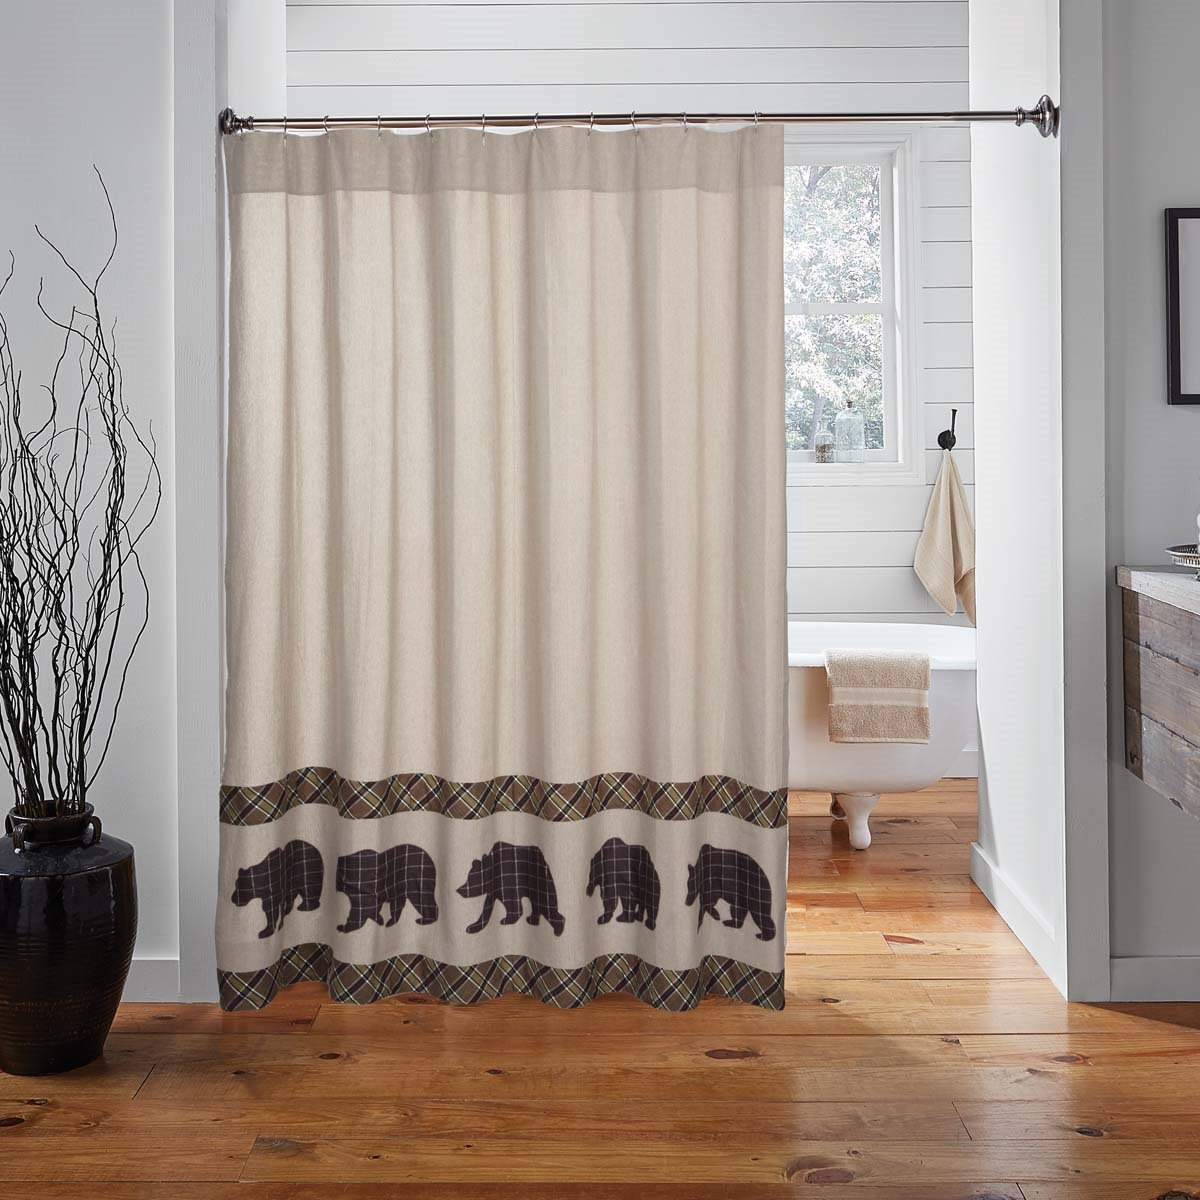 Wyatt Bear Shower Curtain By Vhc Brands P C Fallon Co